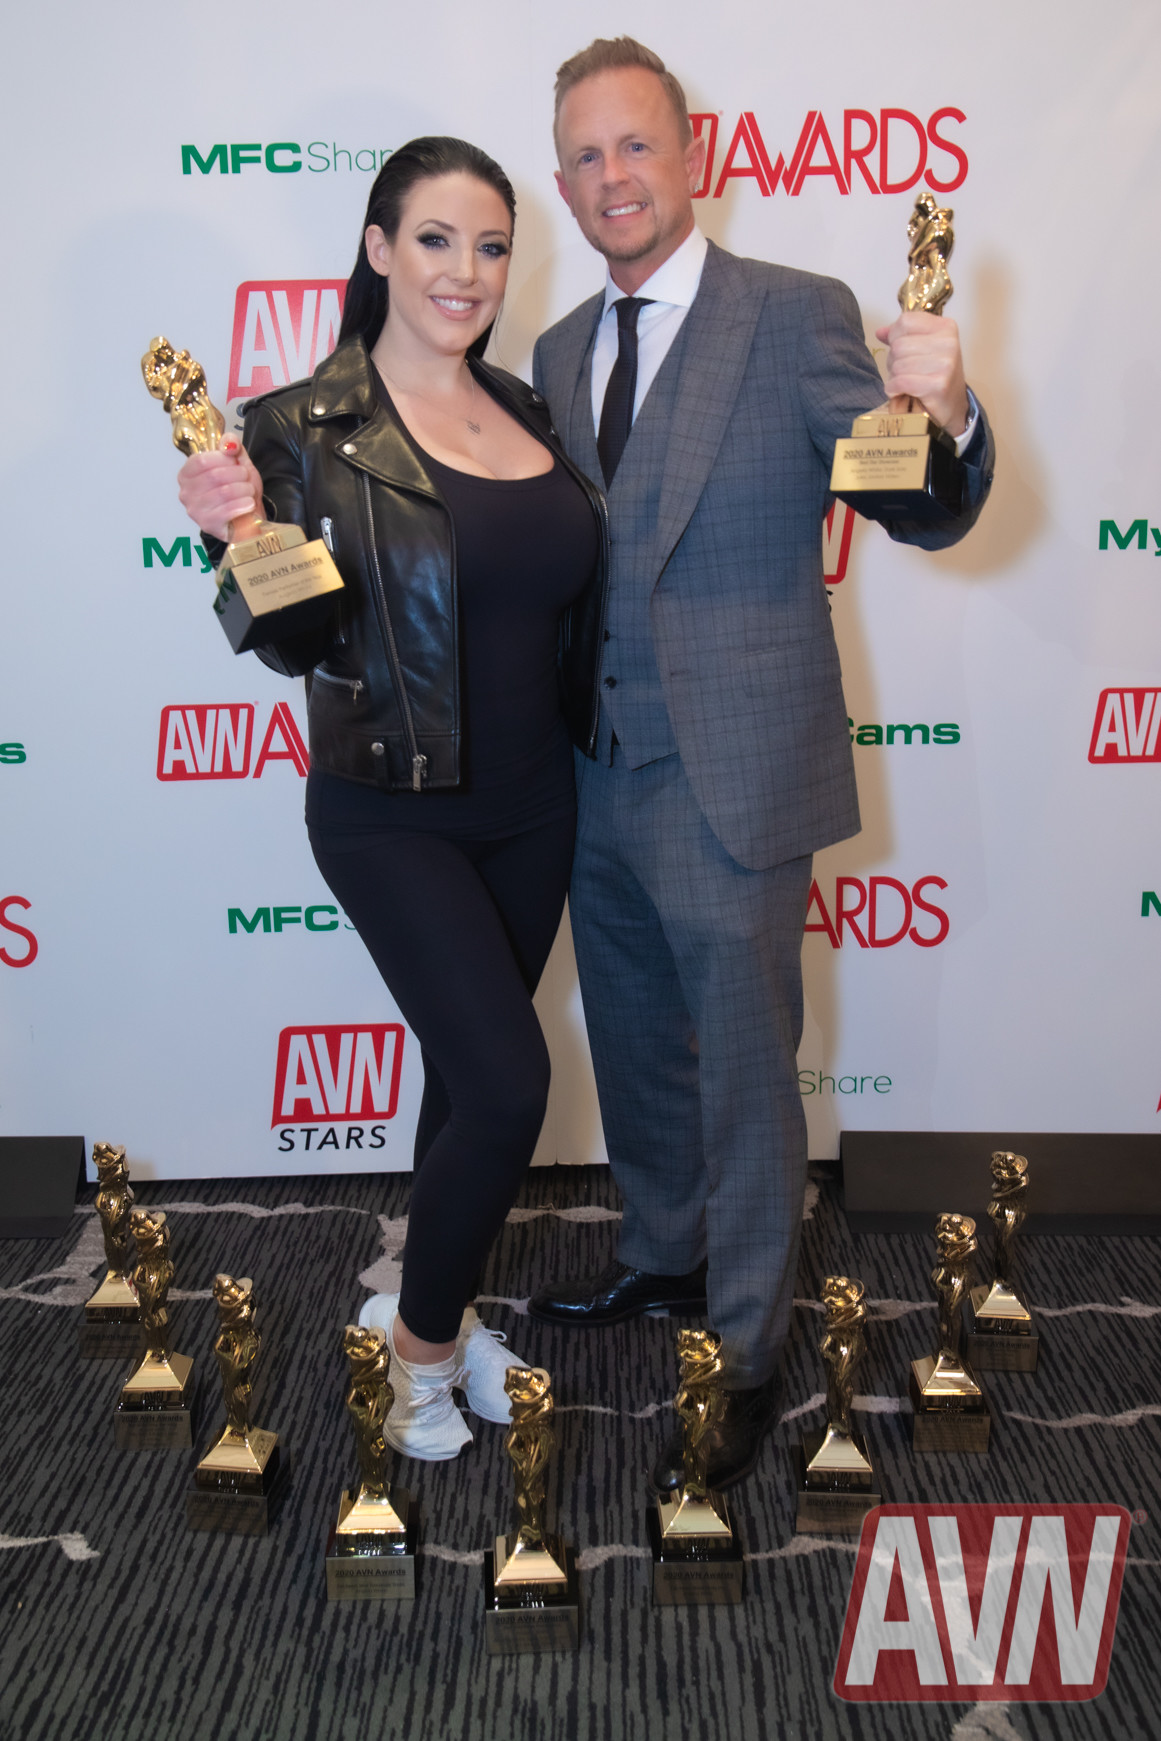 awards party Avn after